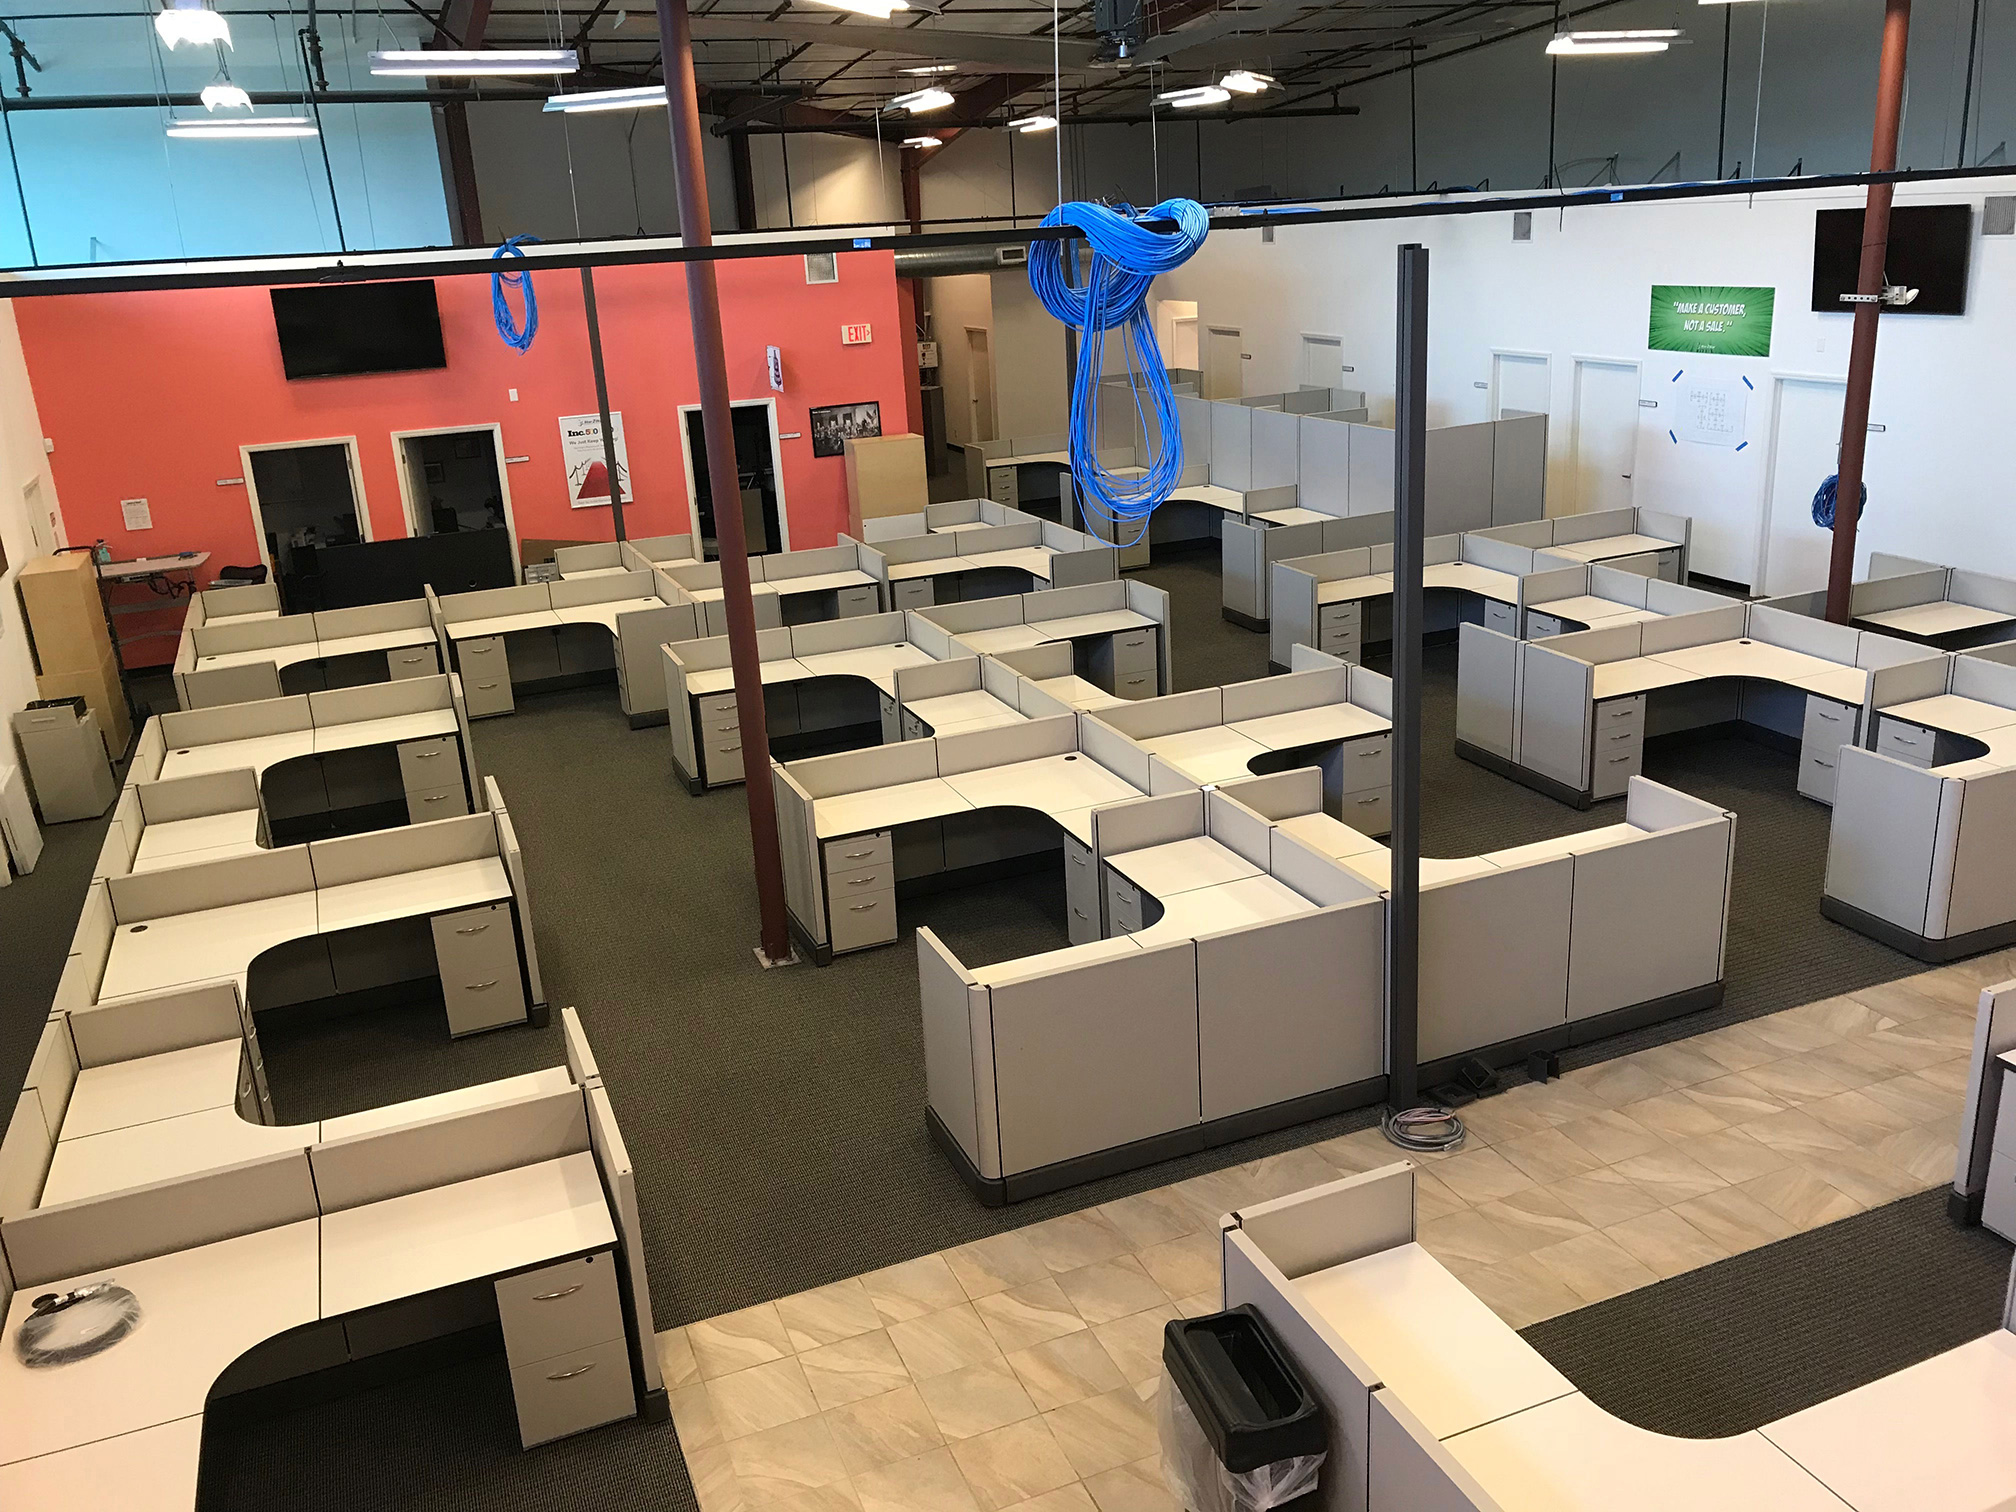 office-cubicles-for-sale-in-niceville-florida-2.jpg